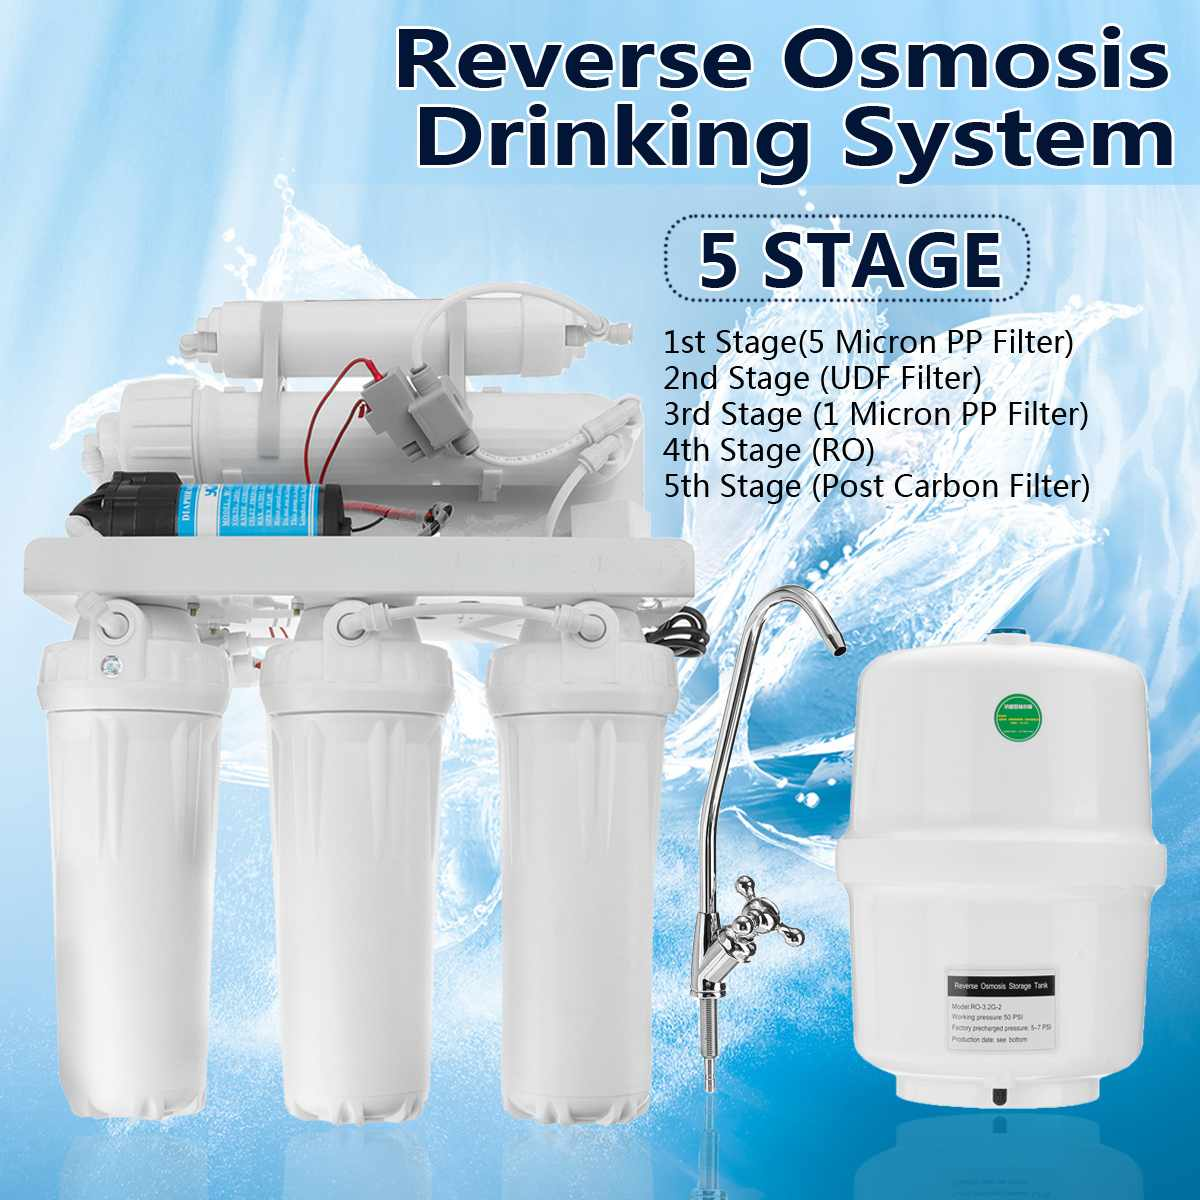 5 Stage RO Reverse Osmosis System Drinking Water Filter Purifier Kitchen Water Filters Membrane System Filtration With Faucet